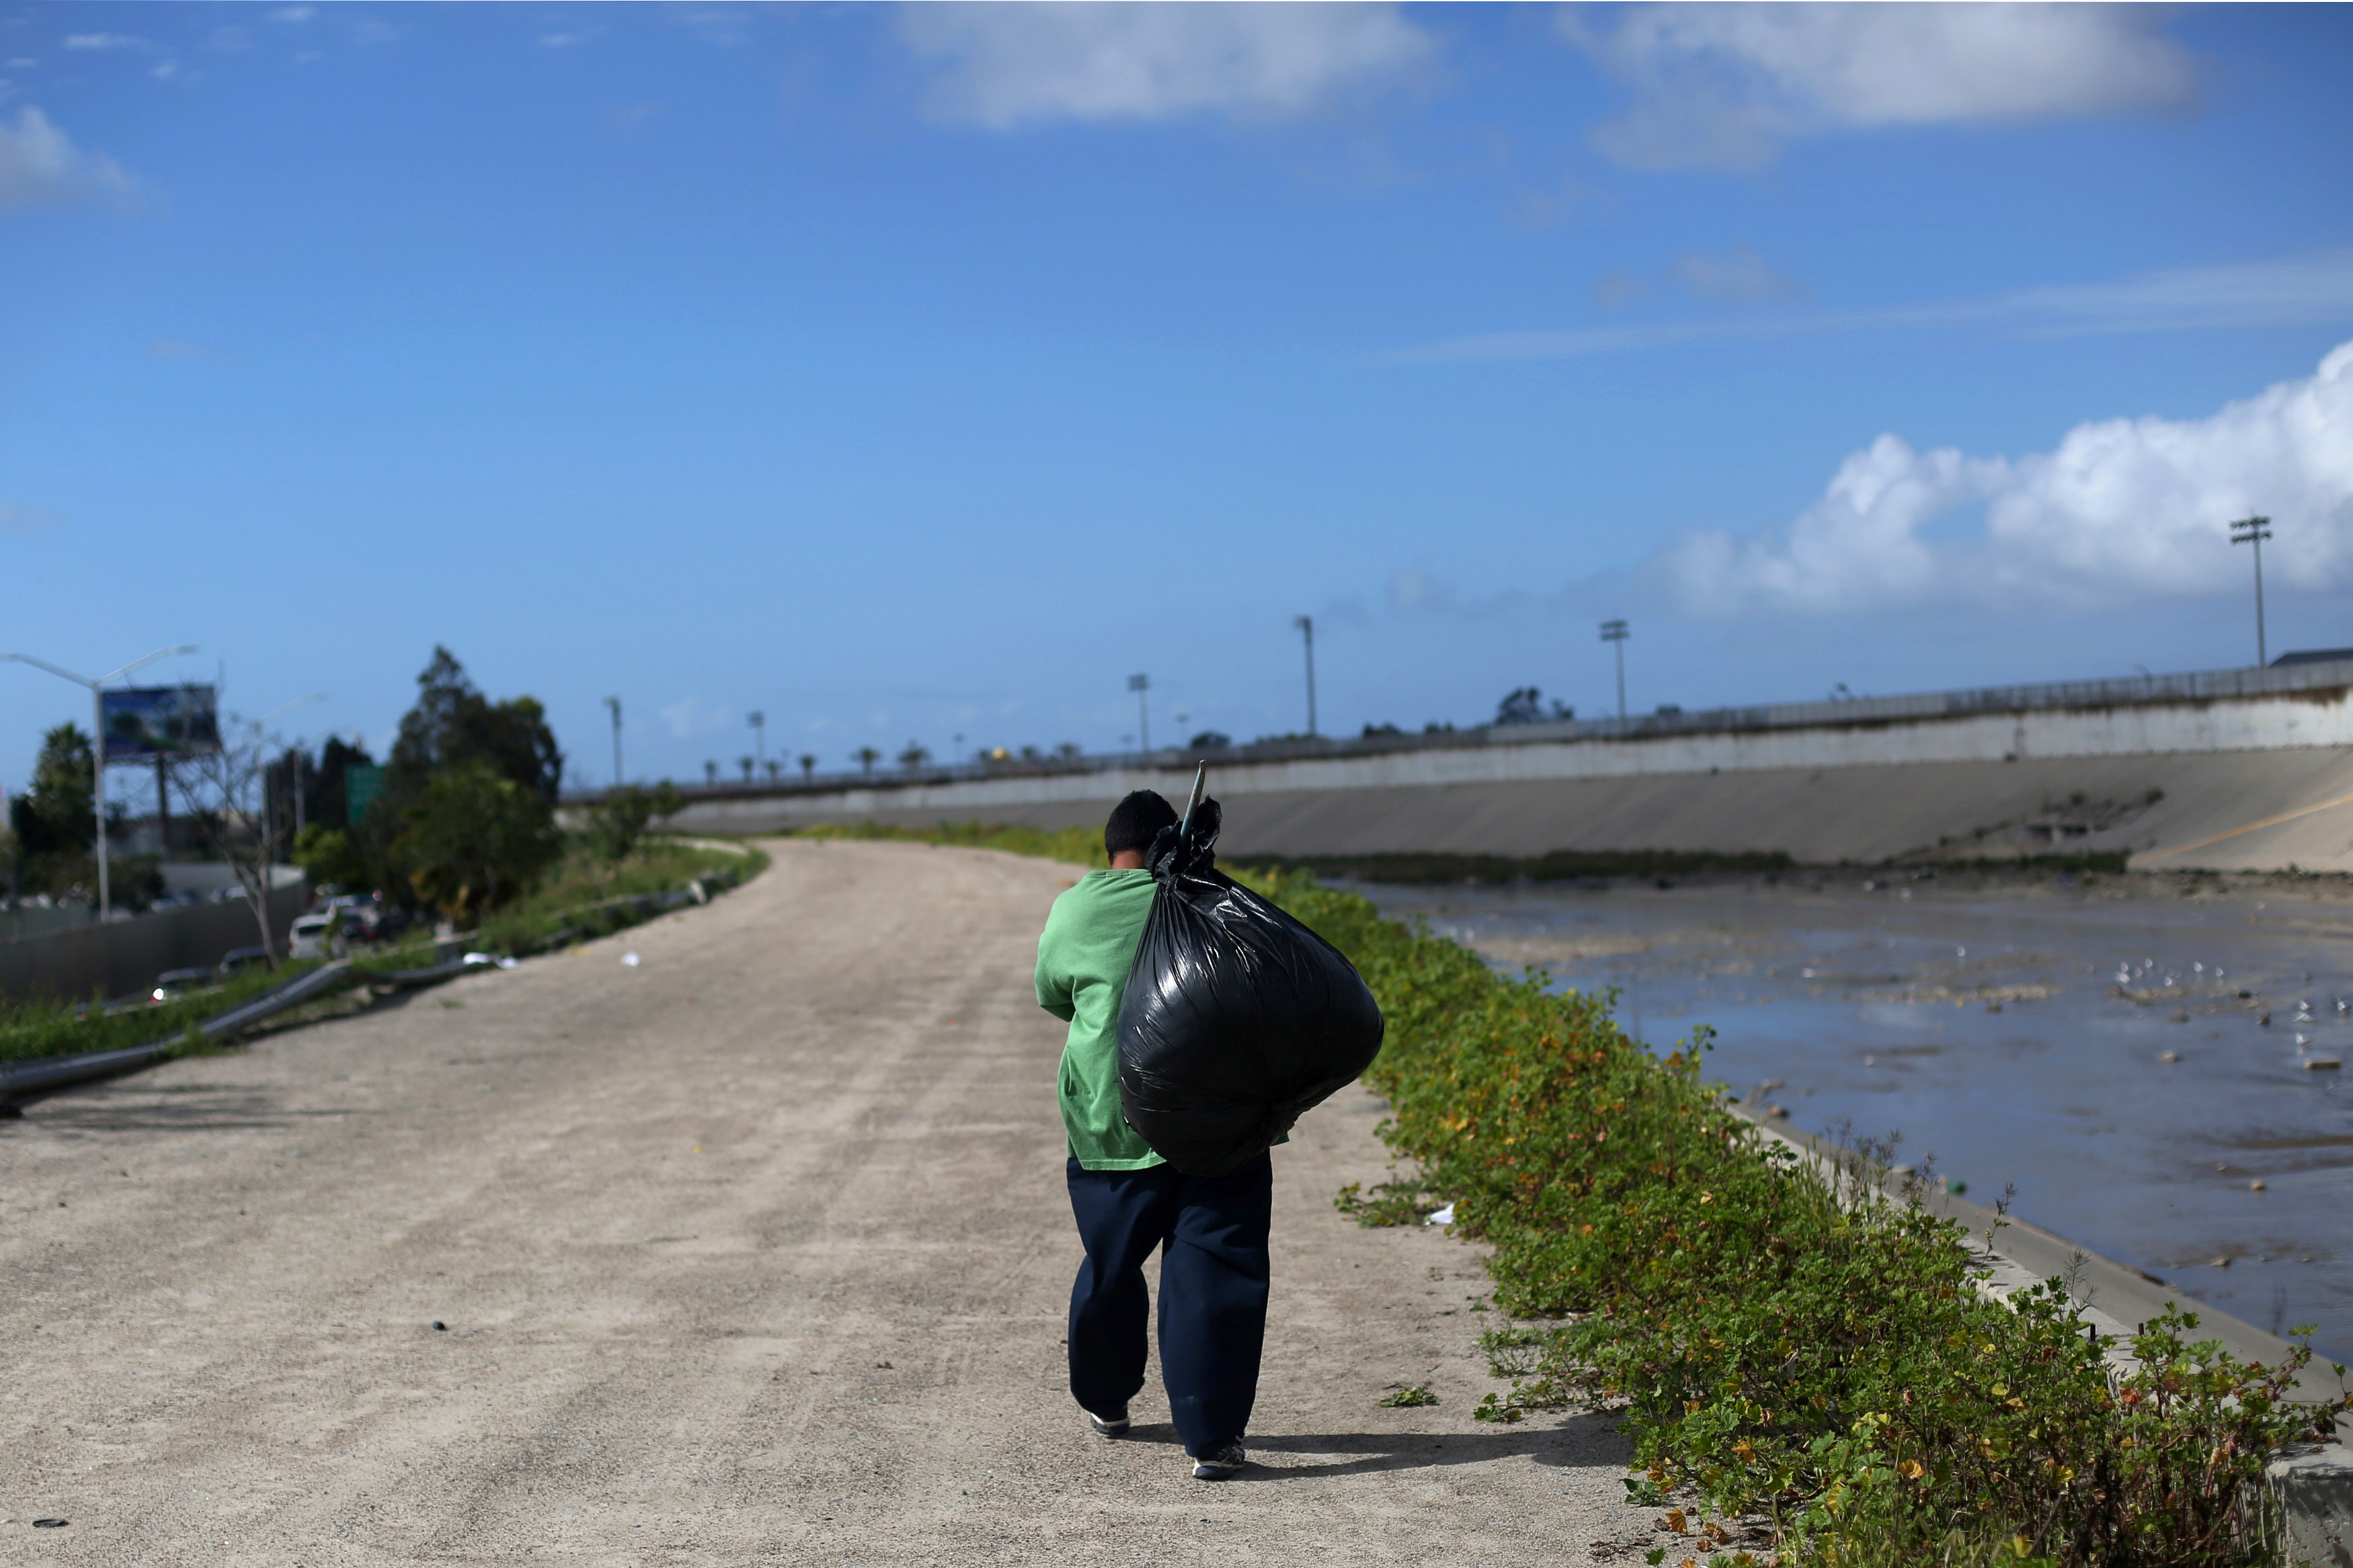 A Mexican who was recently deported from the U.S. carries a black bag Feb. 22 next to the Tijuana river, in Tijuana, Mexico. REUTERS/Edgard Garrido - RTSZWEE